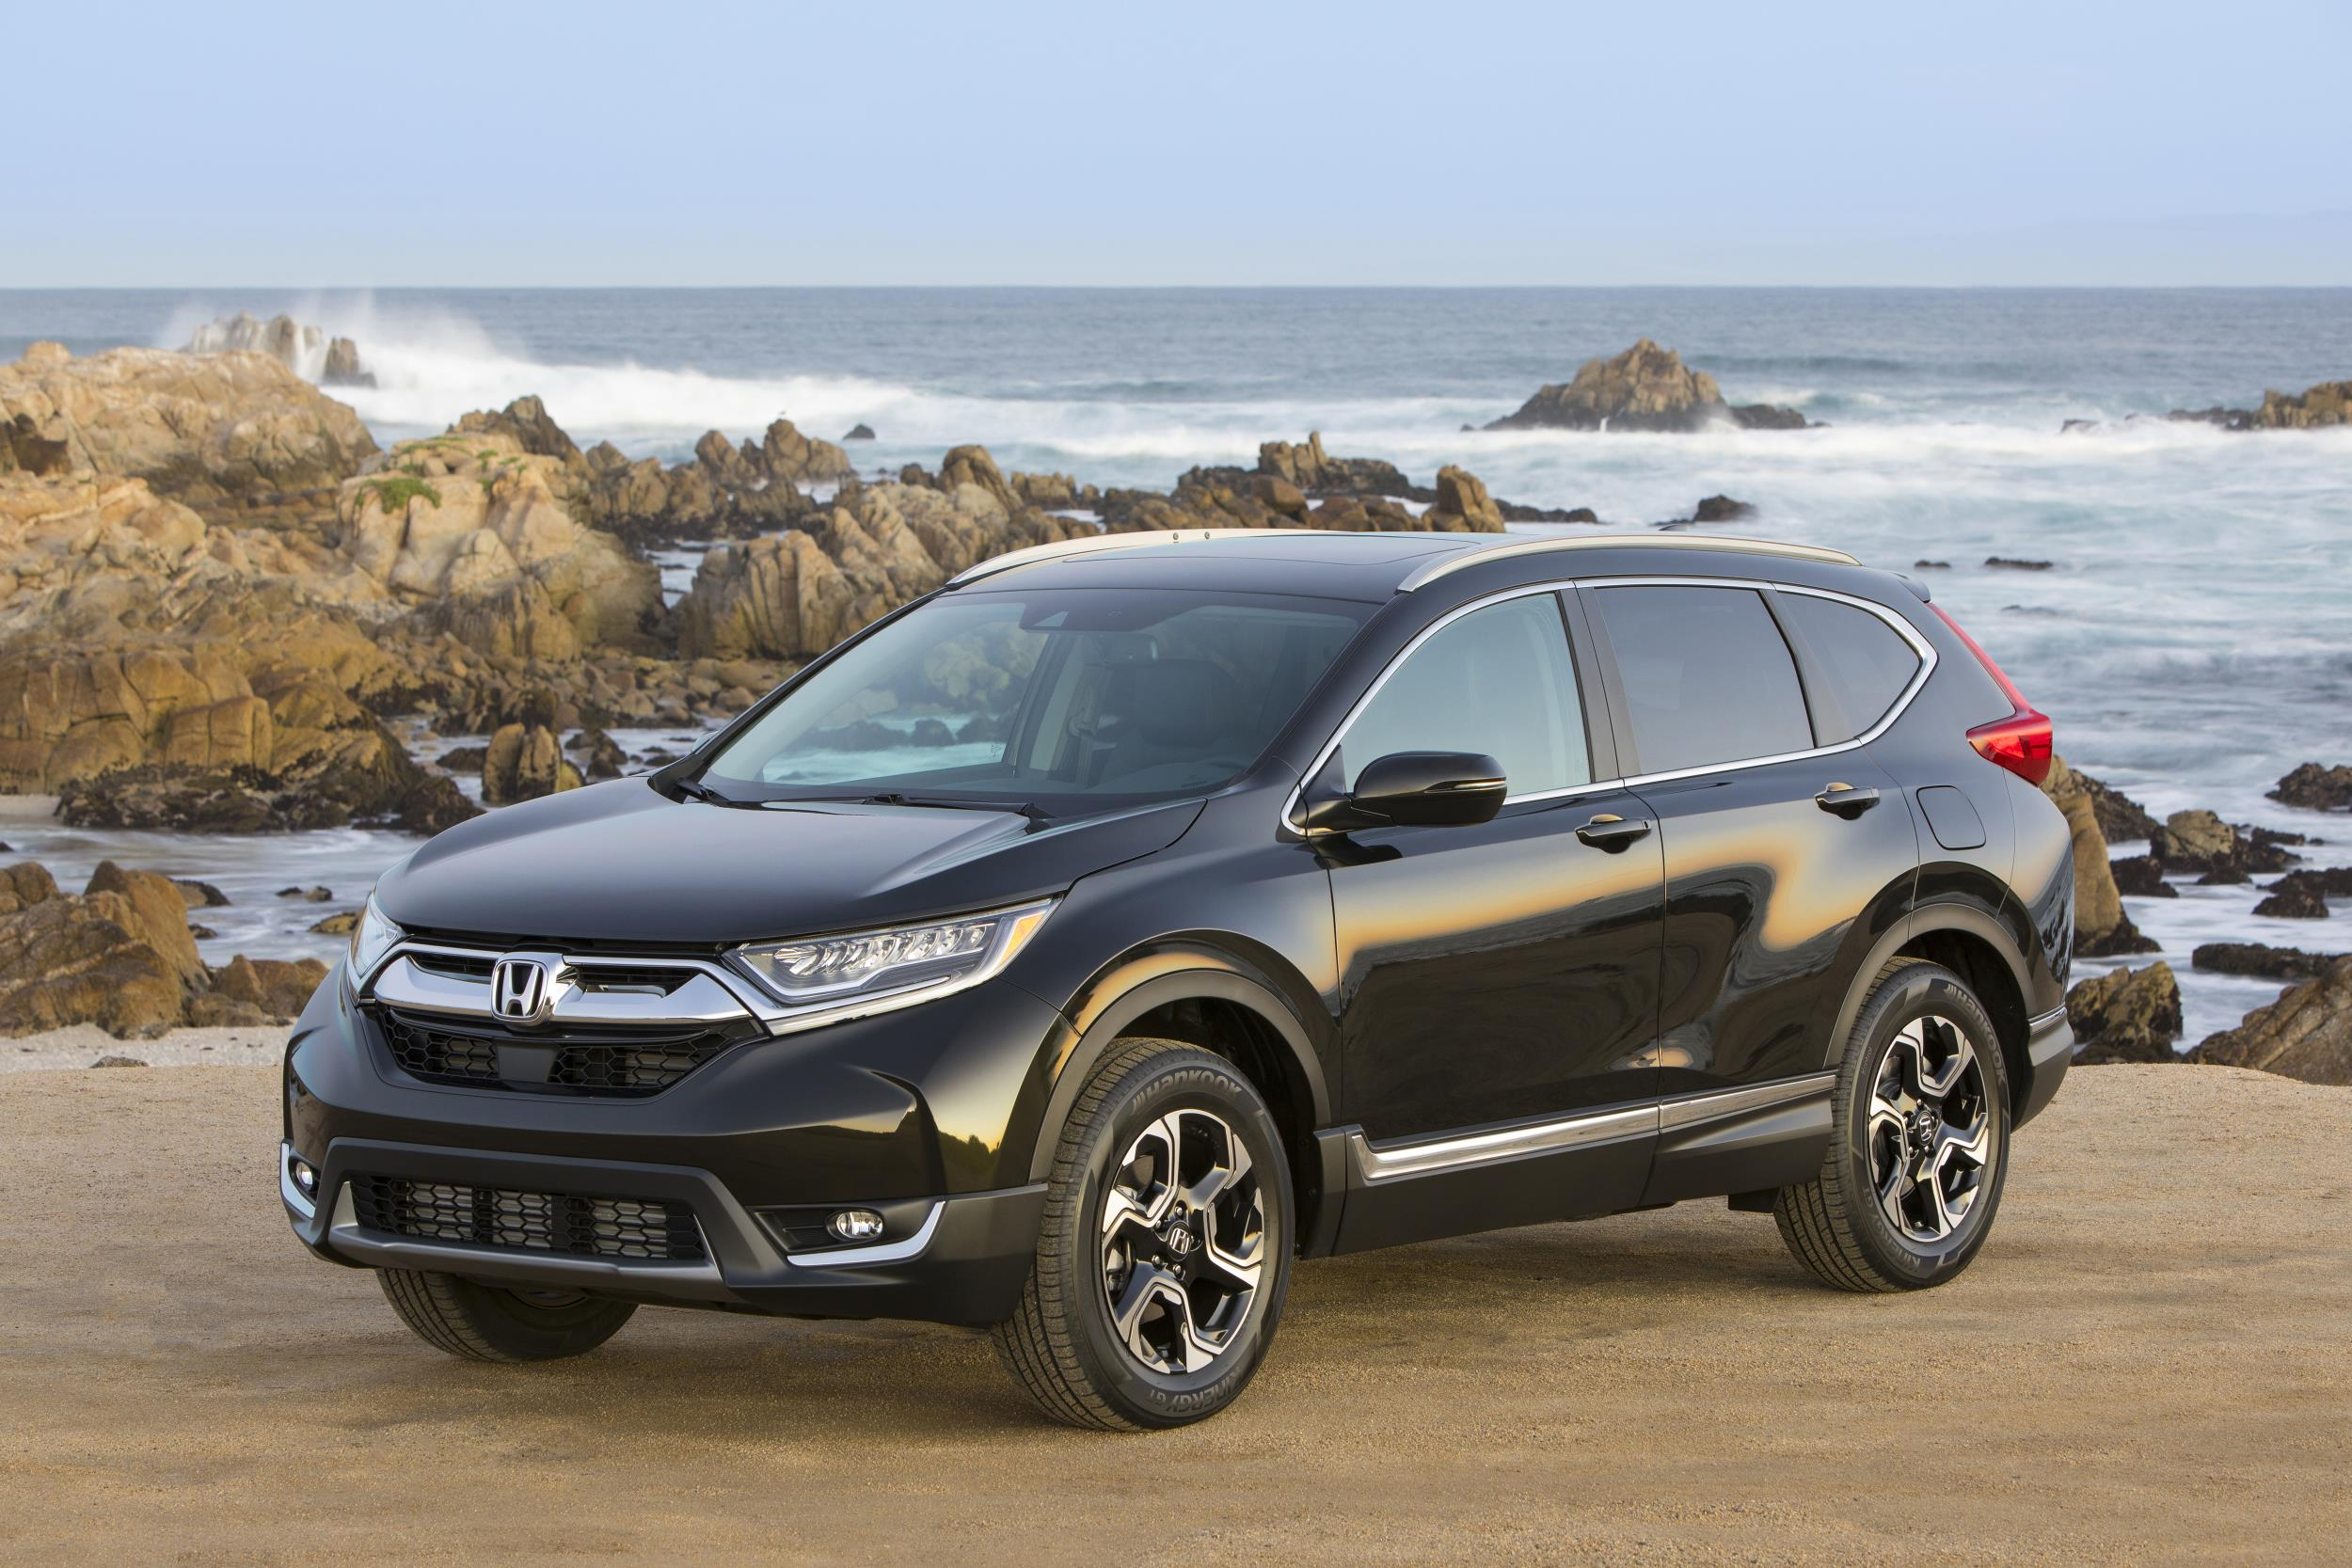 8 Honda CR V Top 10 Best Selling Vehicles In The USA To